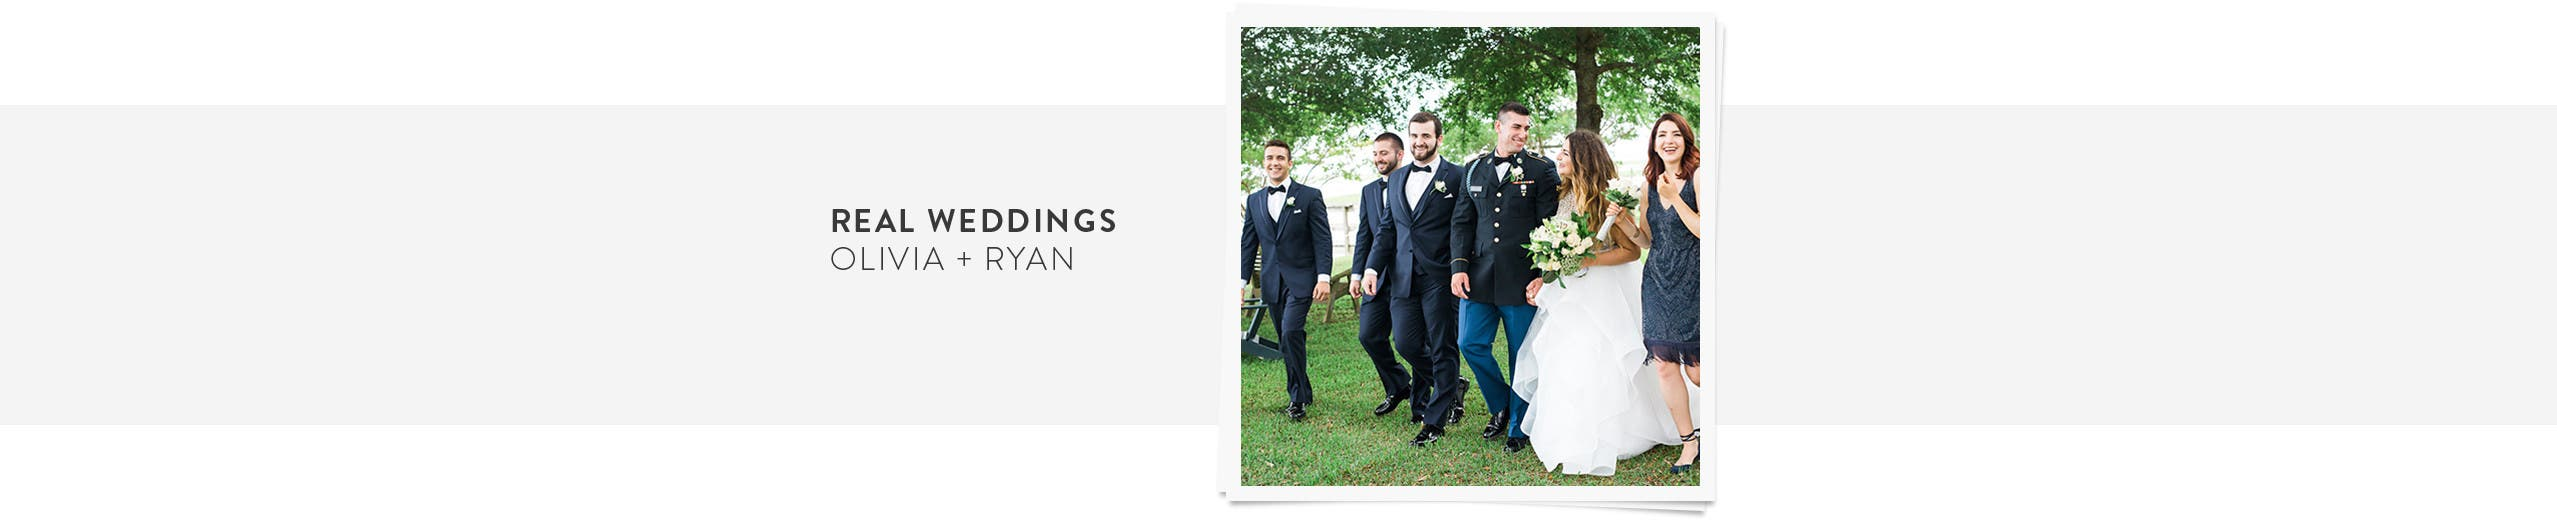 Real Weddings: Olivia and Ryan. A nautical-themed ceremony in Murrells Inlet, South Carolina.